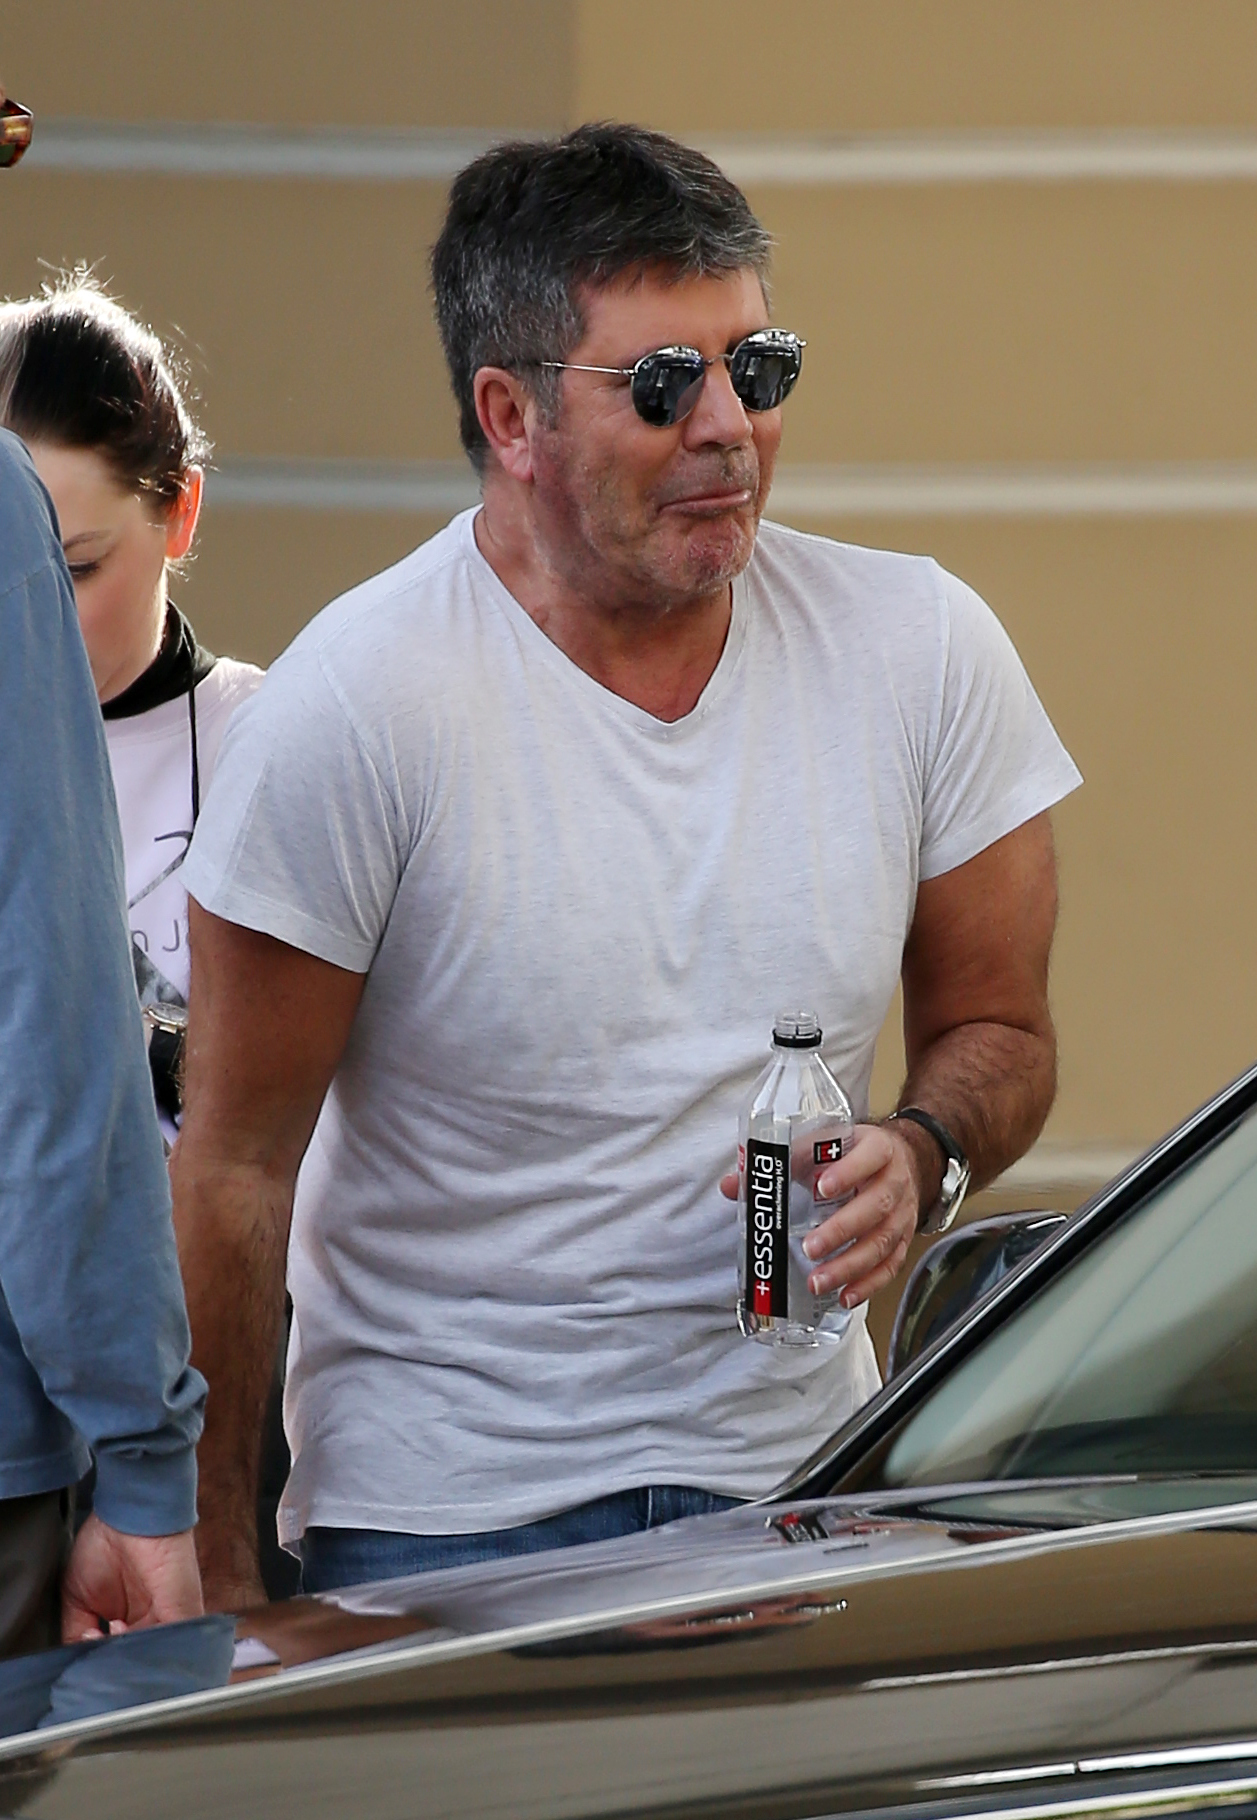 """Simon Cowell pulls a funny face as he drinks out of a bottle of water as he arrives at the """"America's Got Talent"""" filming in Pasadena, Calif., on March 18, 2018."""